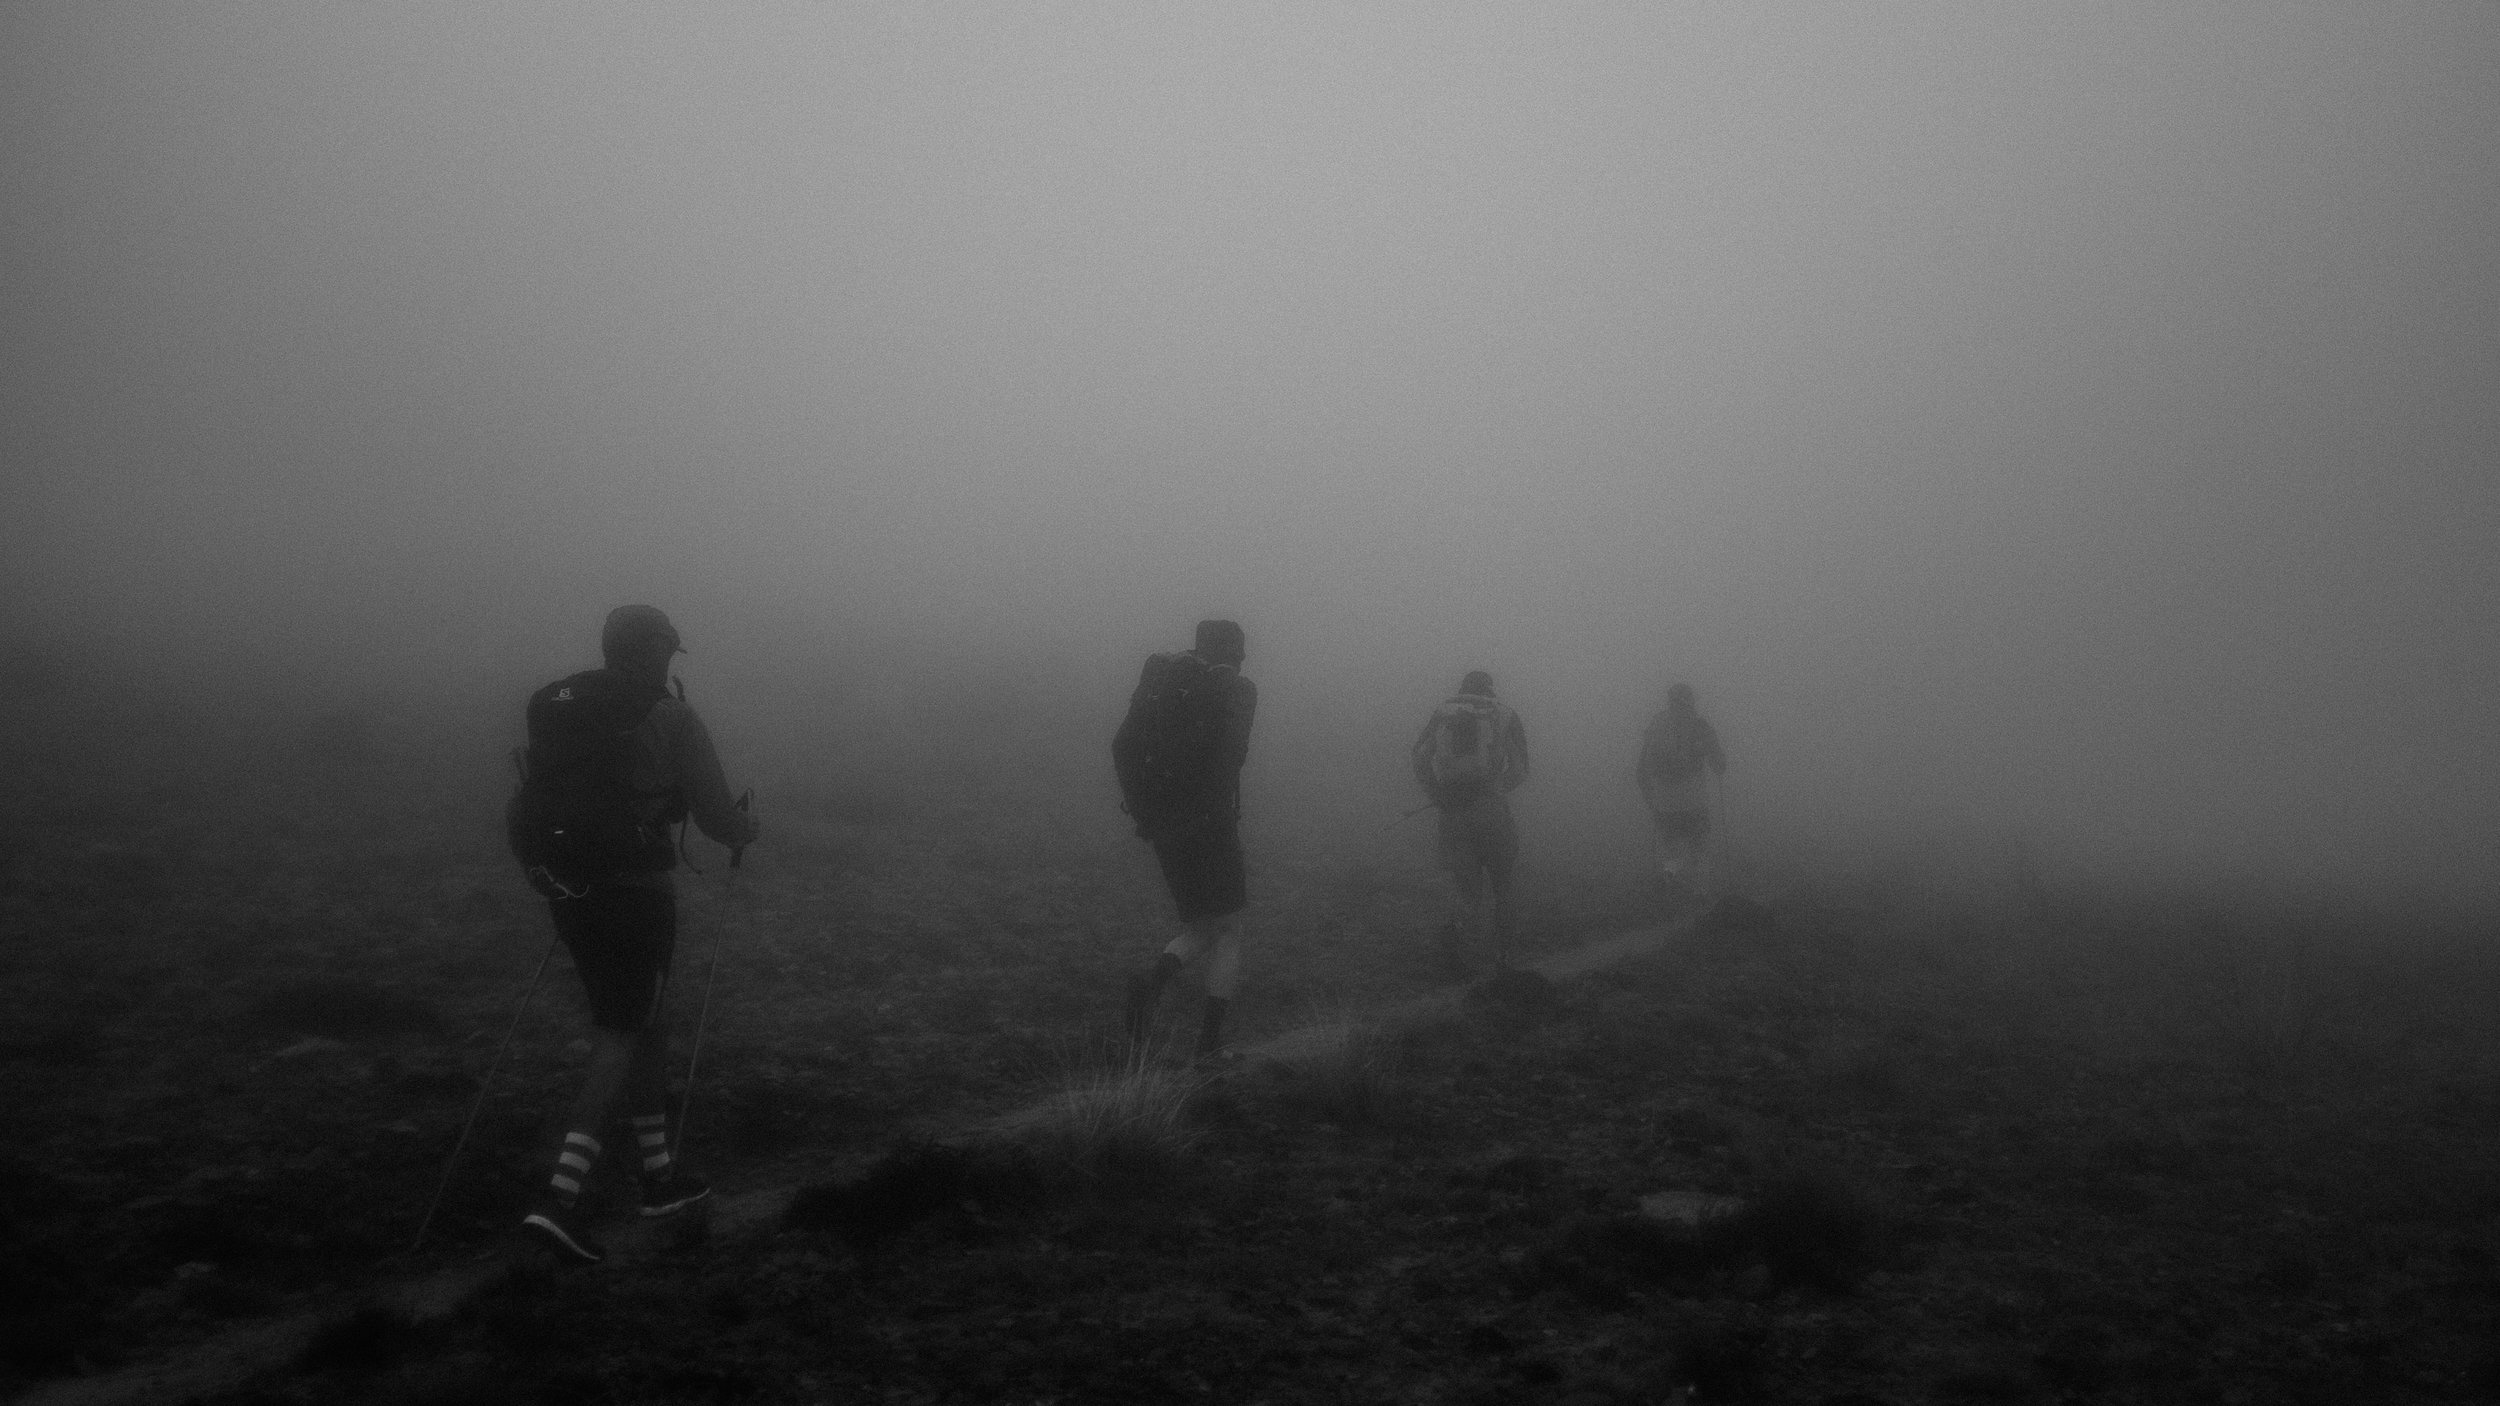 Heading into the cloud on the final morning.